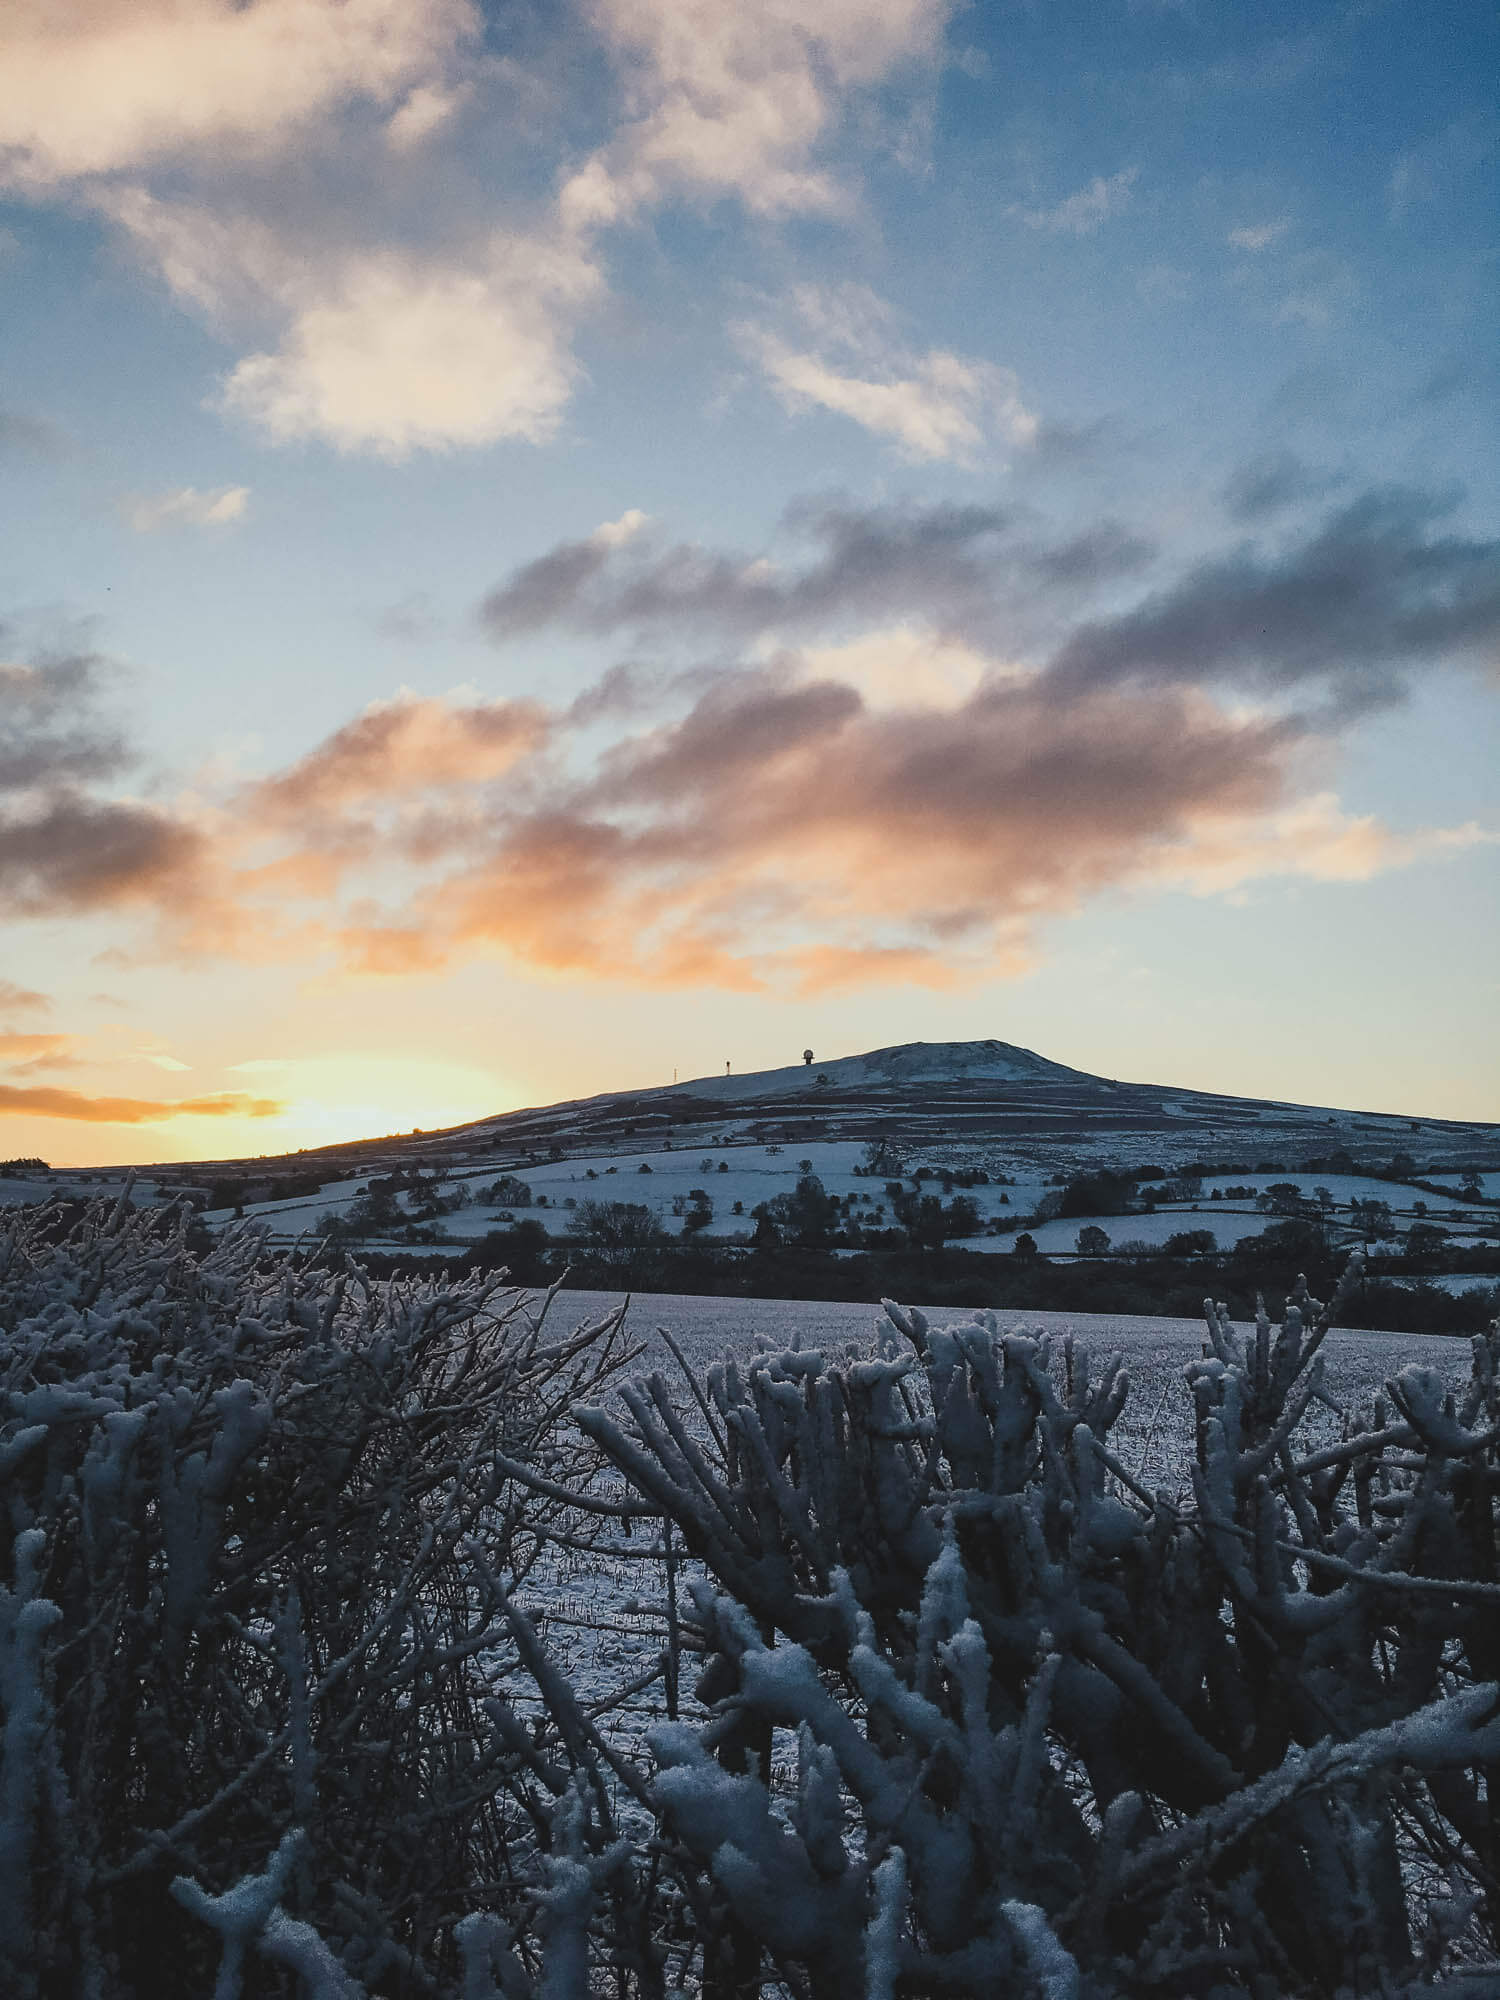 Sunset on Clee Hill in Shropshire over a landscape covered in snow - Clee hill